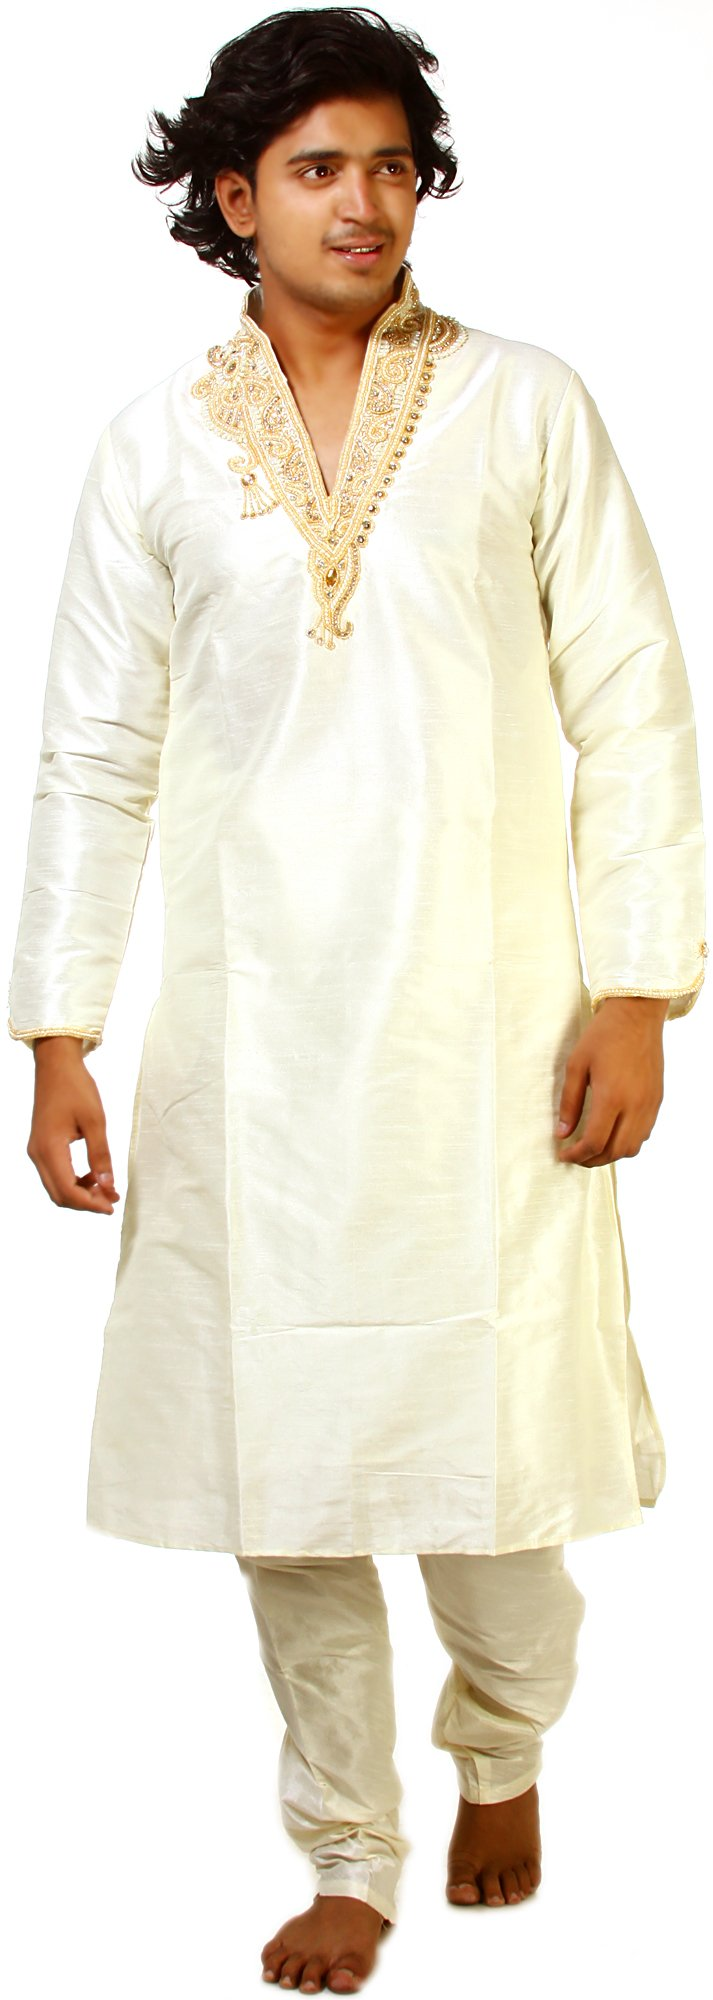 Exotic India Ivory Wedding Kurta Pajama with Crystal an Size 36